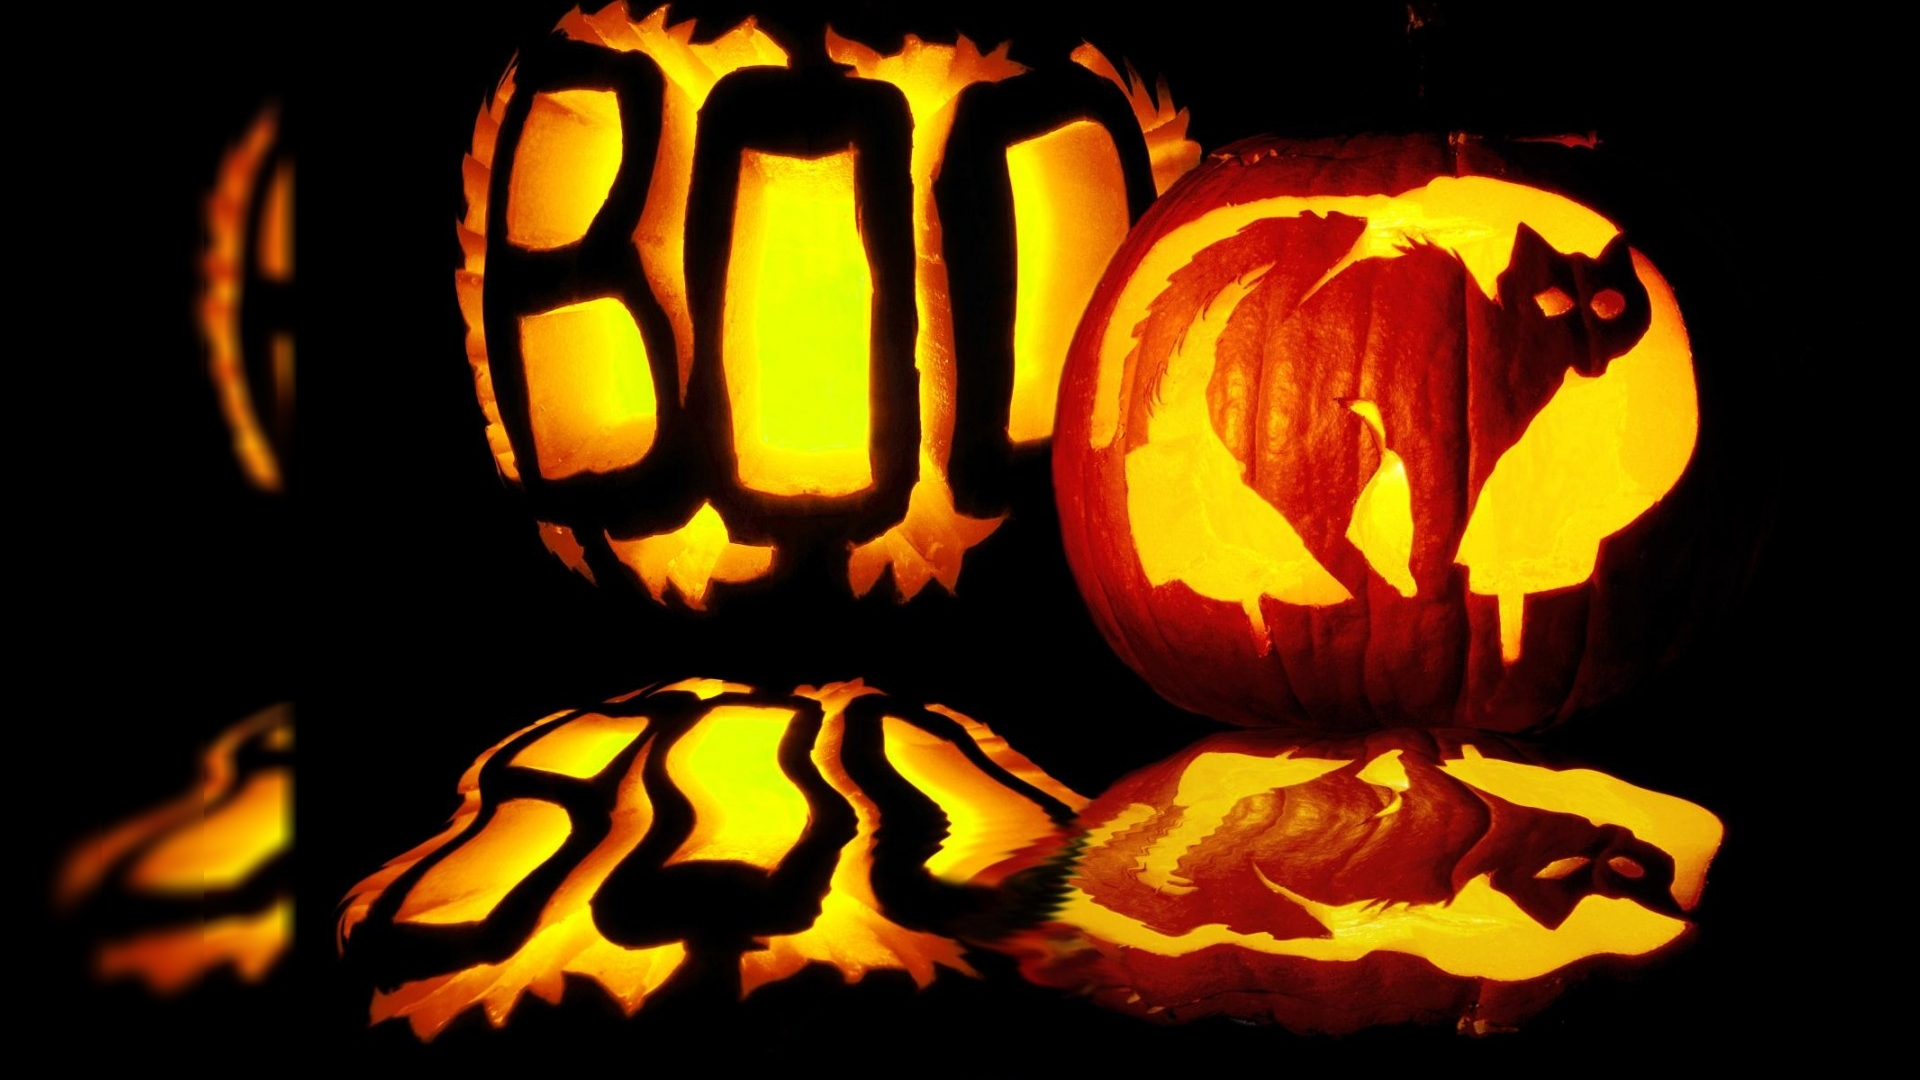 Halloween Wallpapers For Laptop Computer1